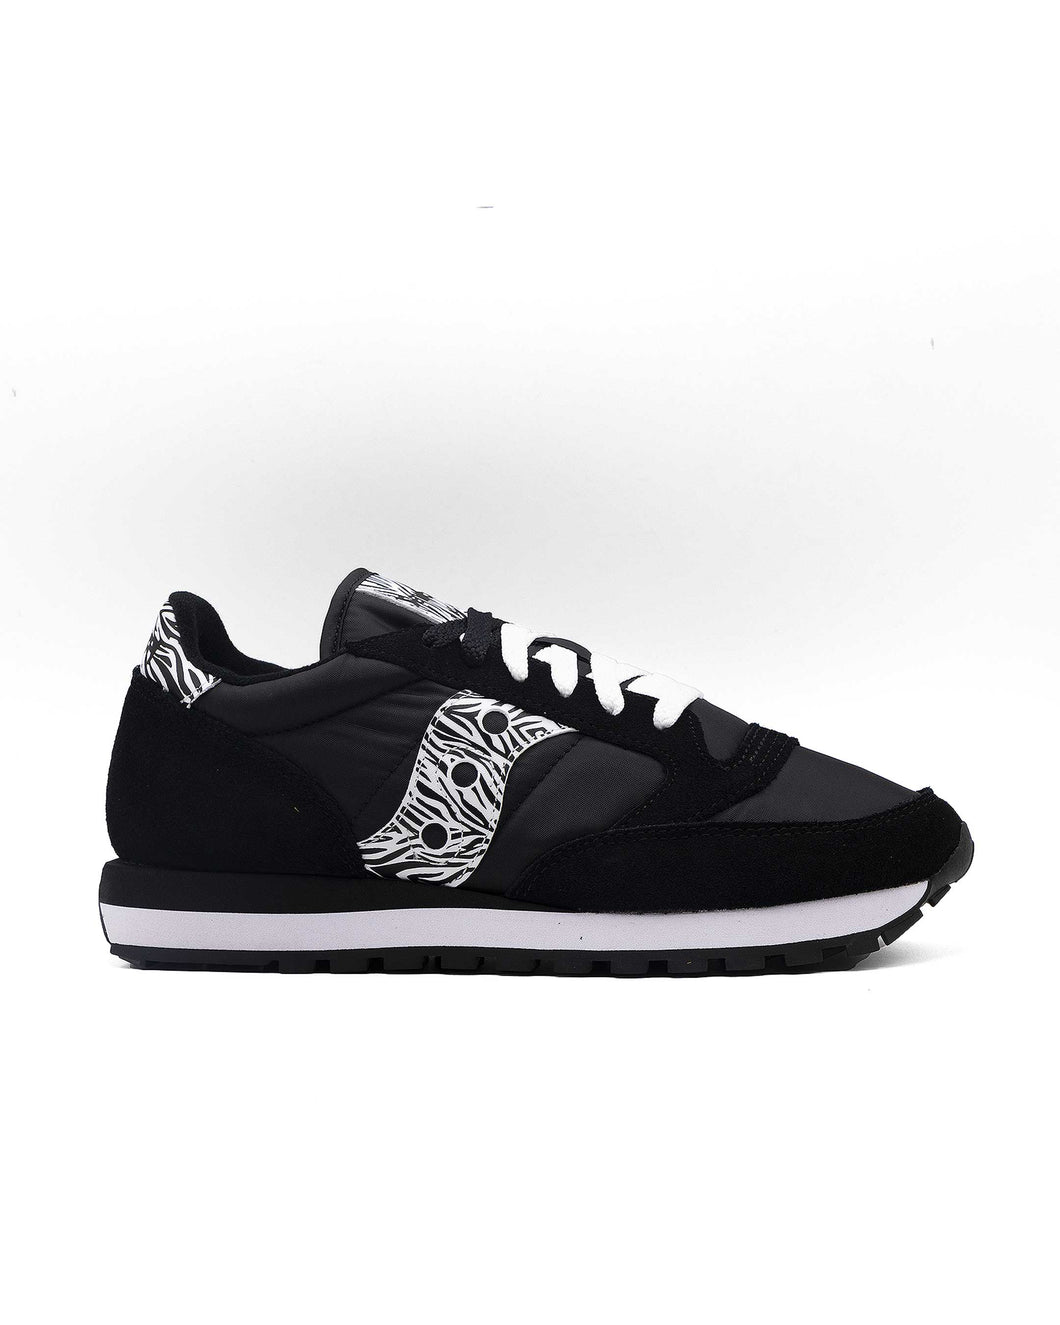 Saucony Jazz Original Woman Black/Zebra